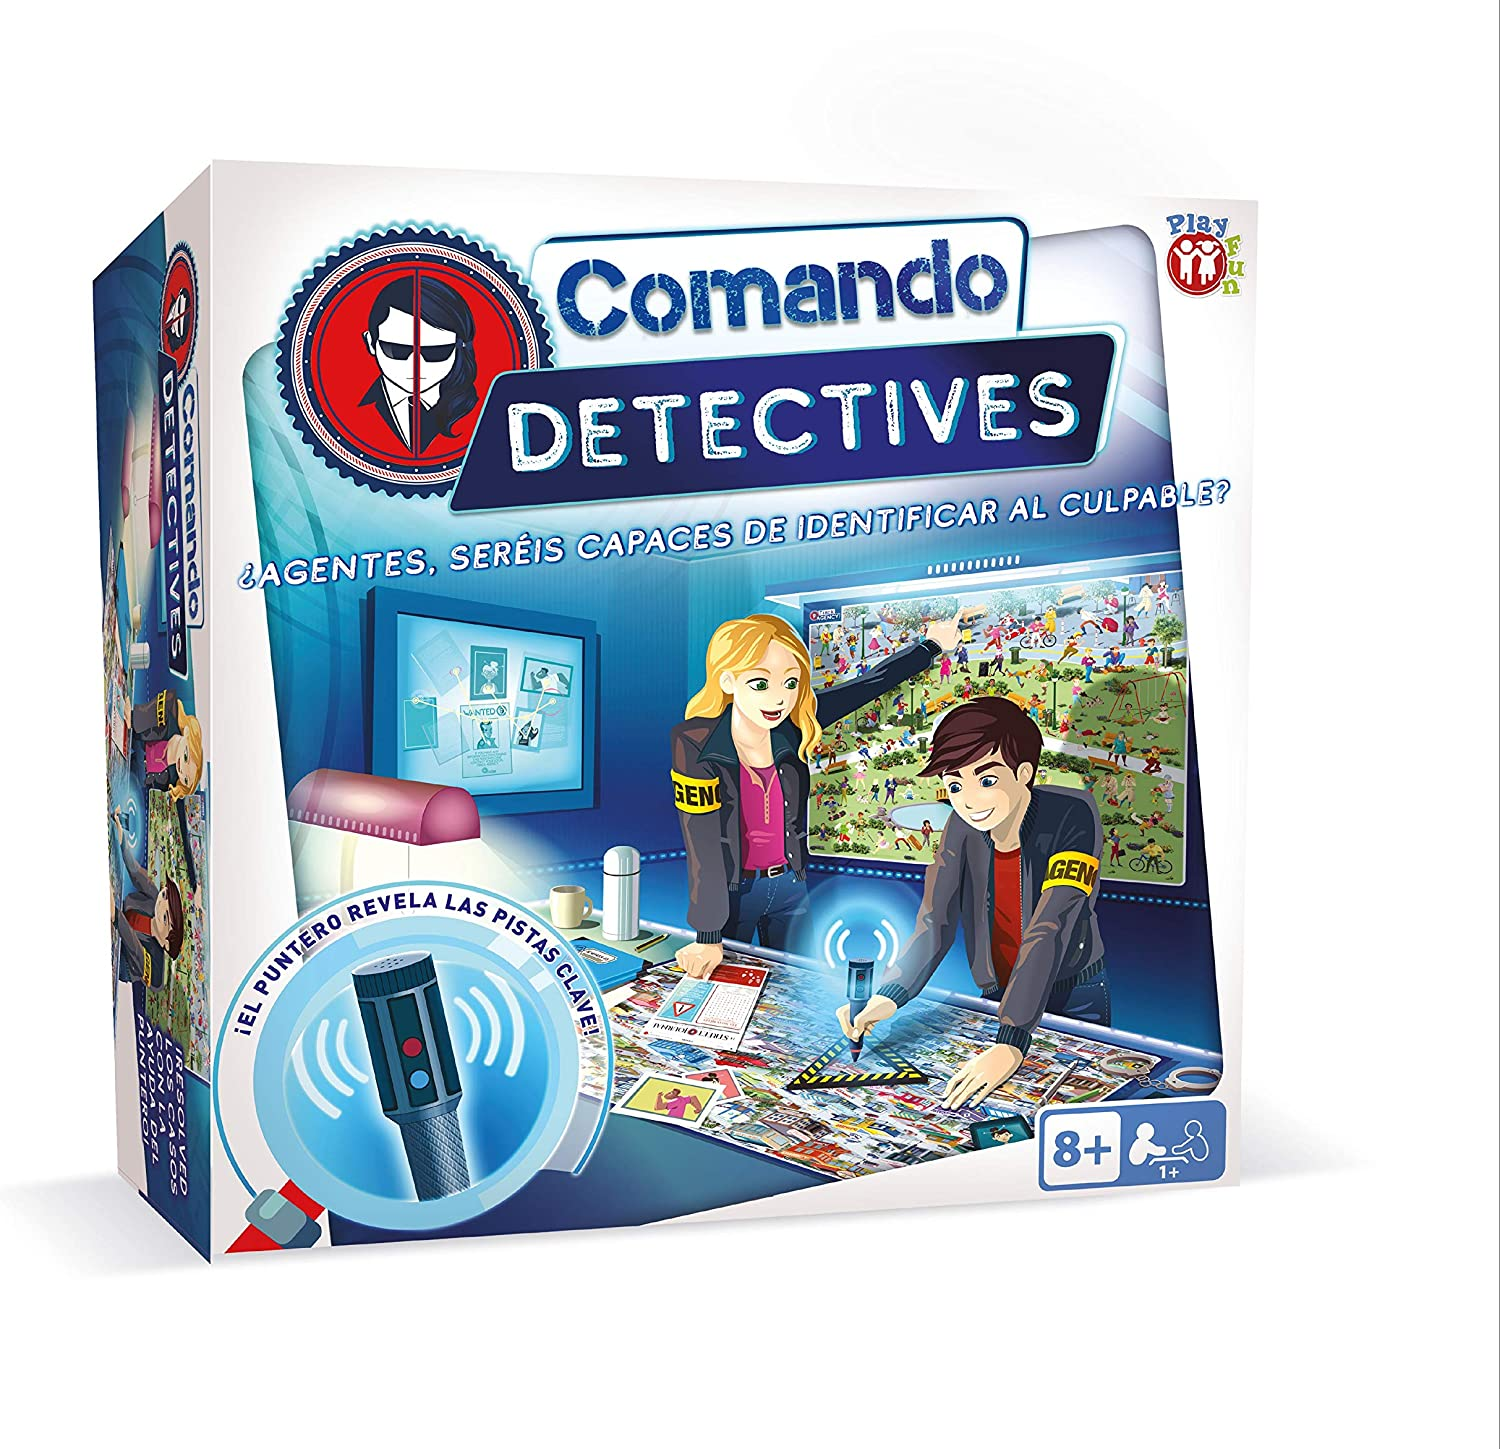 IMC Toys 93188 Play Fun Comando Detectives